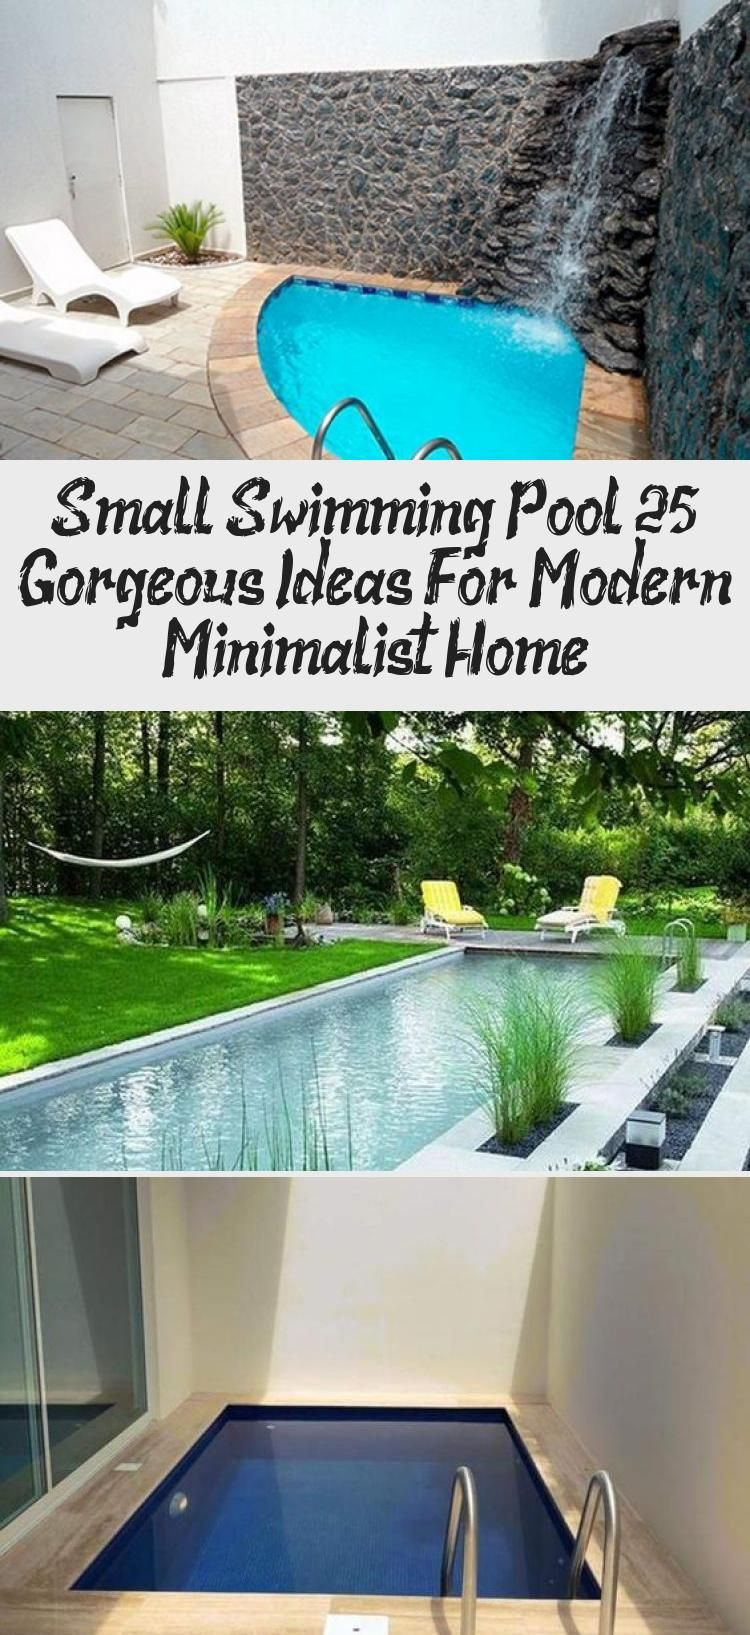 Small Swimming Pool 25 Gorgeous Ideas For Modern Minimalist Home Decor Small Swimming Pools Swimming Pools Rectangular Swimming Pools